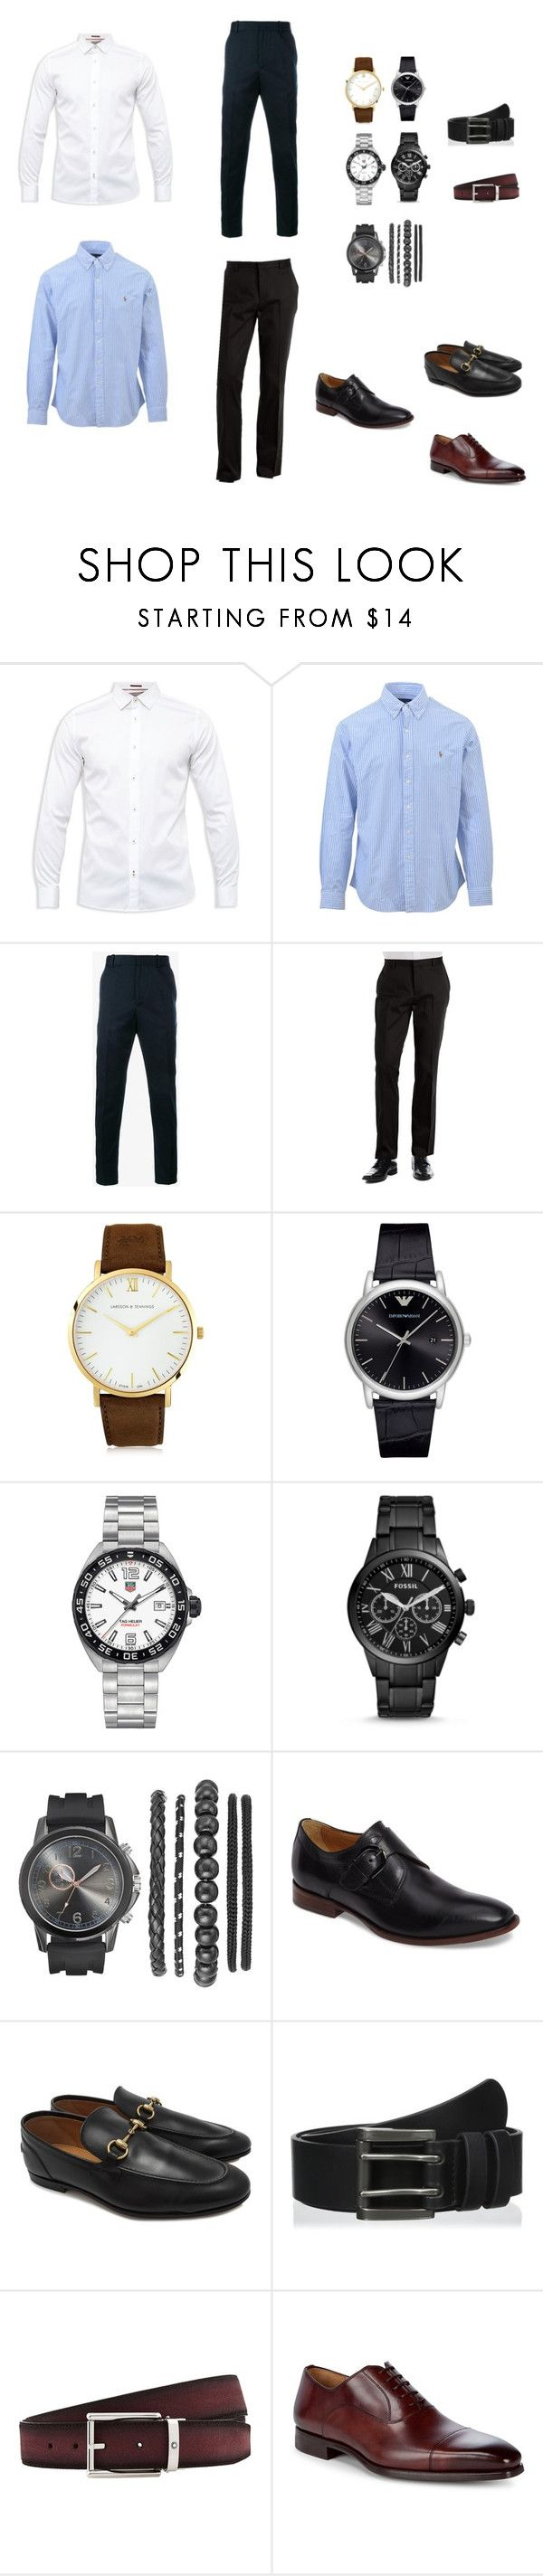 """Propuesta administrativa- hombres"" by loraine-parroquin on Polyvore featuring Ted Baker, Ralph Lauren, Gucci, Calvin Klein, Larsson & Jennings, Giorgio Armani, TAG Heuer, FOSSIL, Johnston & Murphy y Levi's"